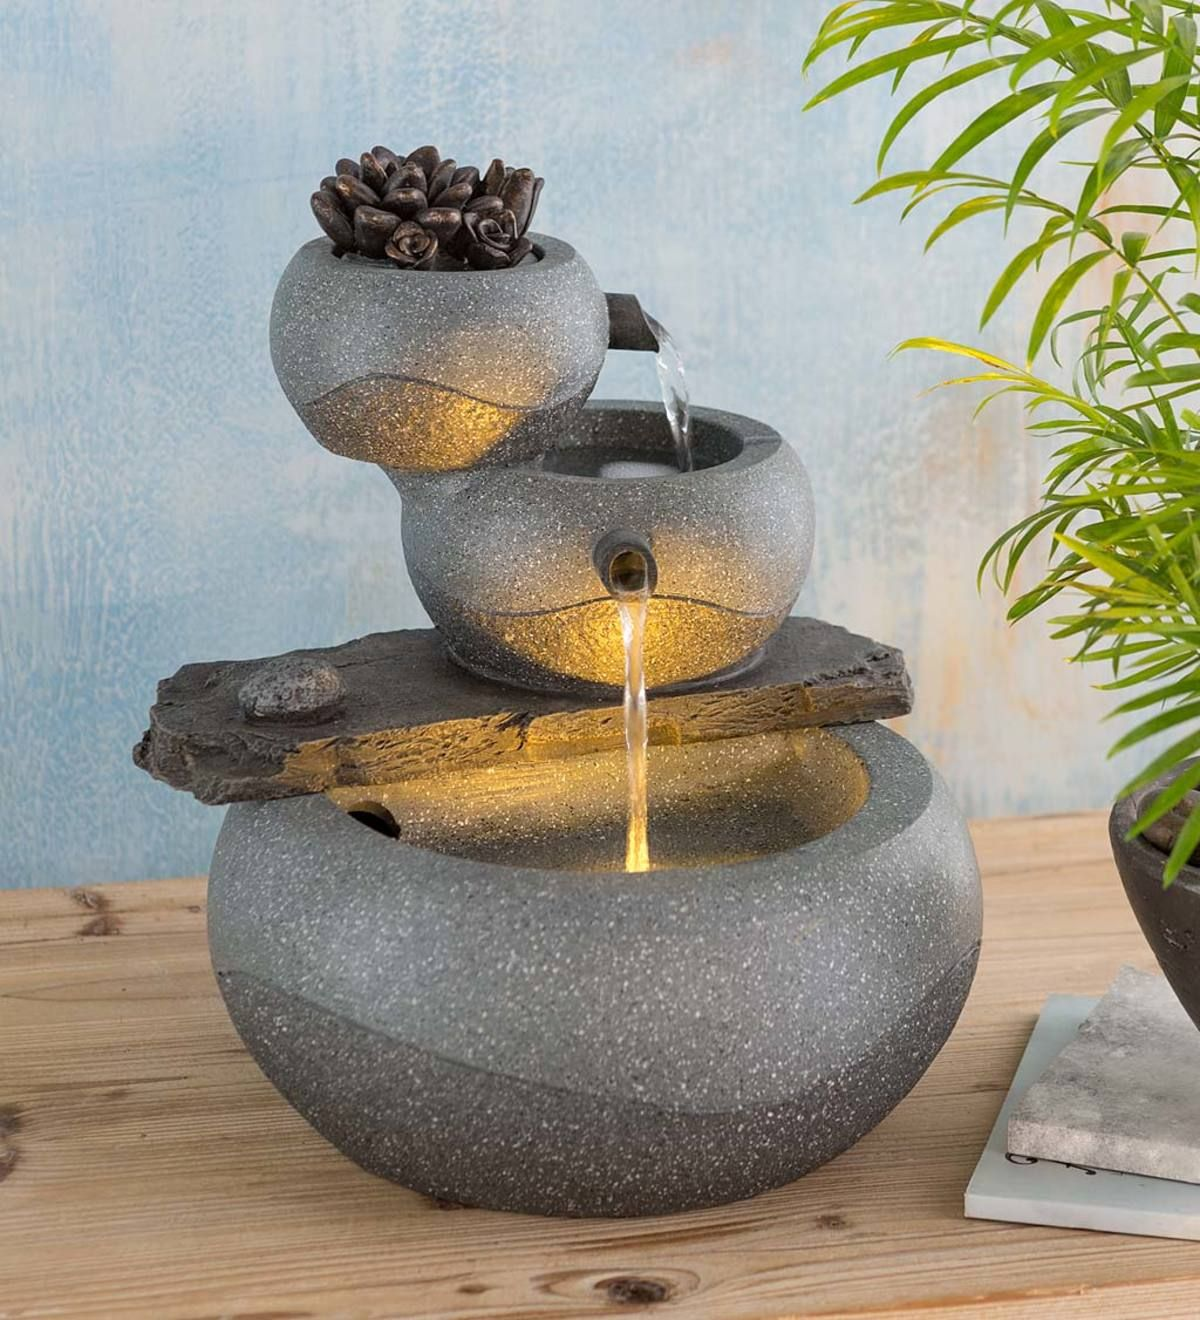 Soothe Your Senses With This Serene Lighted Three Tier Indoor Fountain Designed To Resemble Cast St In 2020 Indoor Fountain Indoor Fountains Indoor Tabletop Fountains